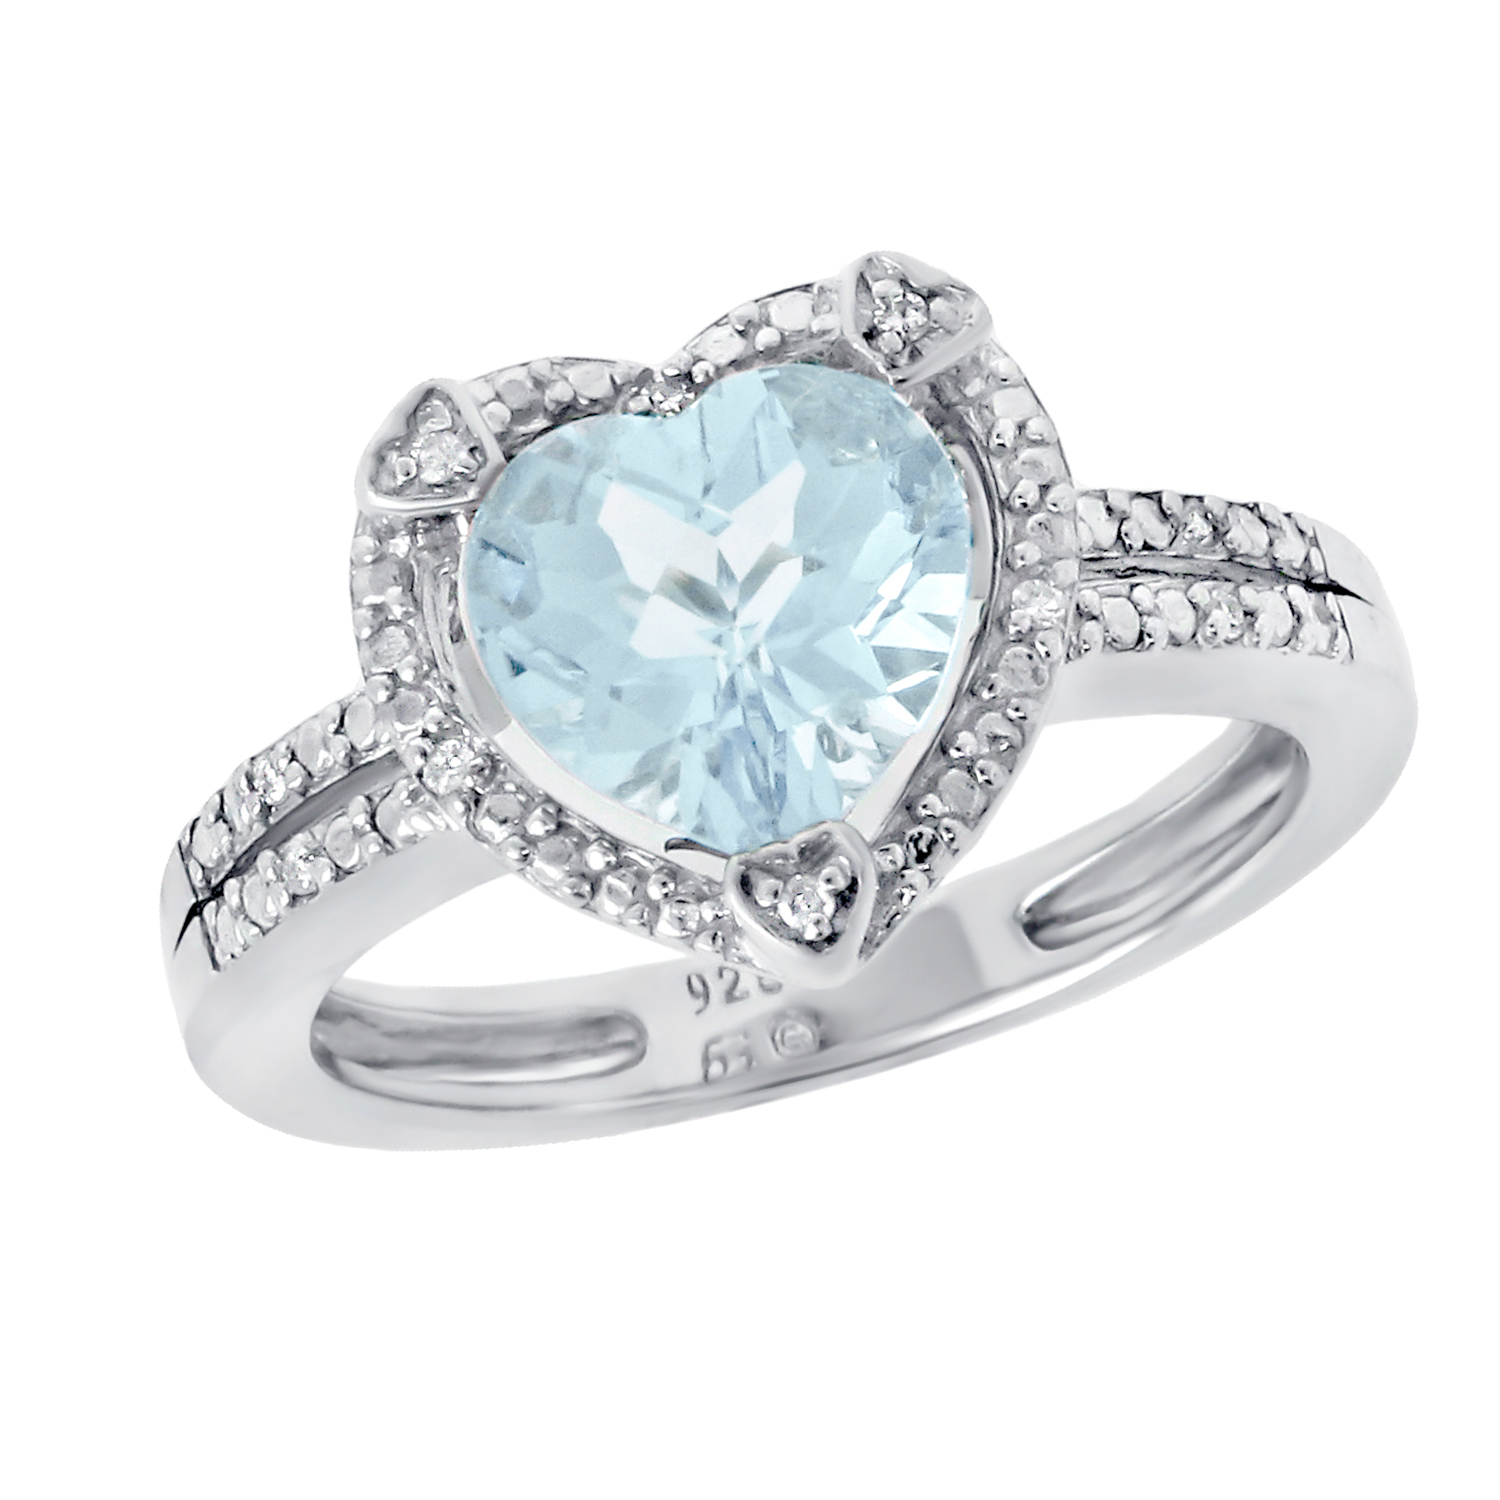 1.20 Ct Heart Sky Blue Aquamarine Diamond Accent 925 Sterling Silver Ring